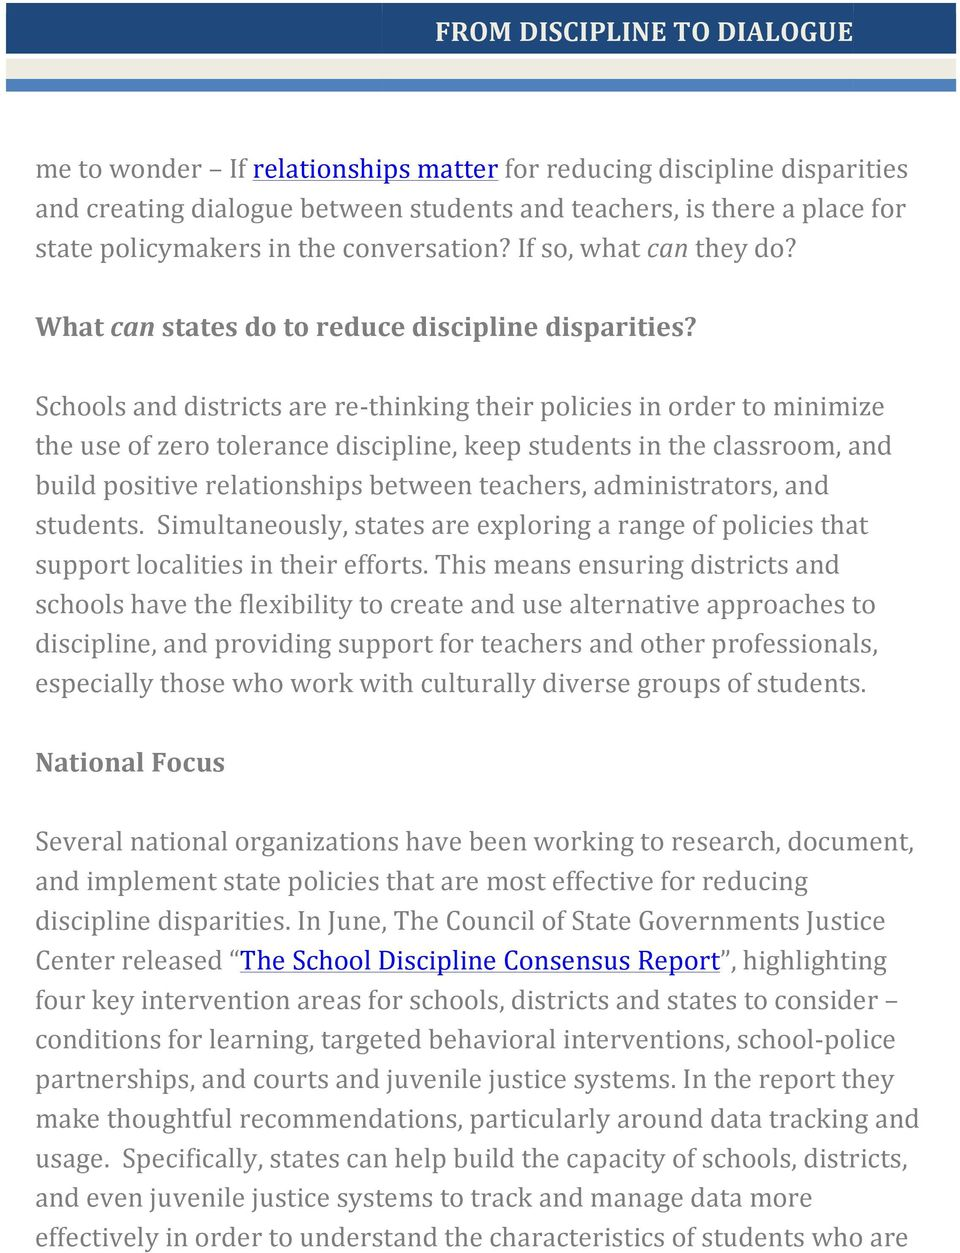 Schools and districts are re- thinking their policies in order to minimize the use of zero tolerance discipline, keep students in the classroom, and build positive relationships between teachers,